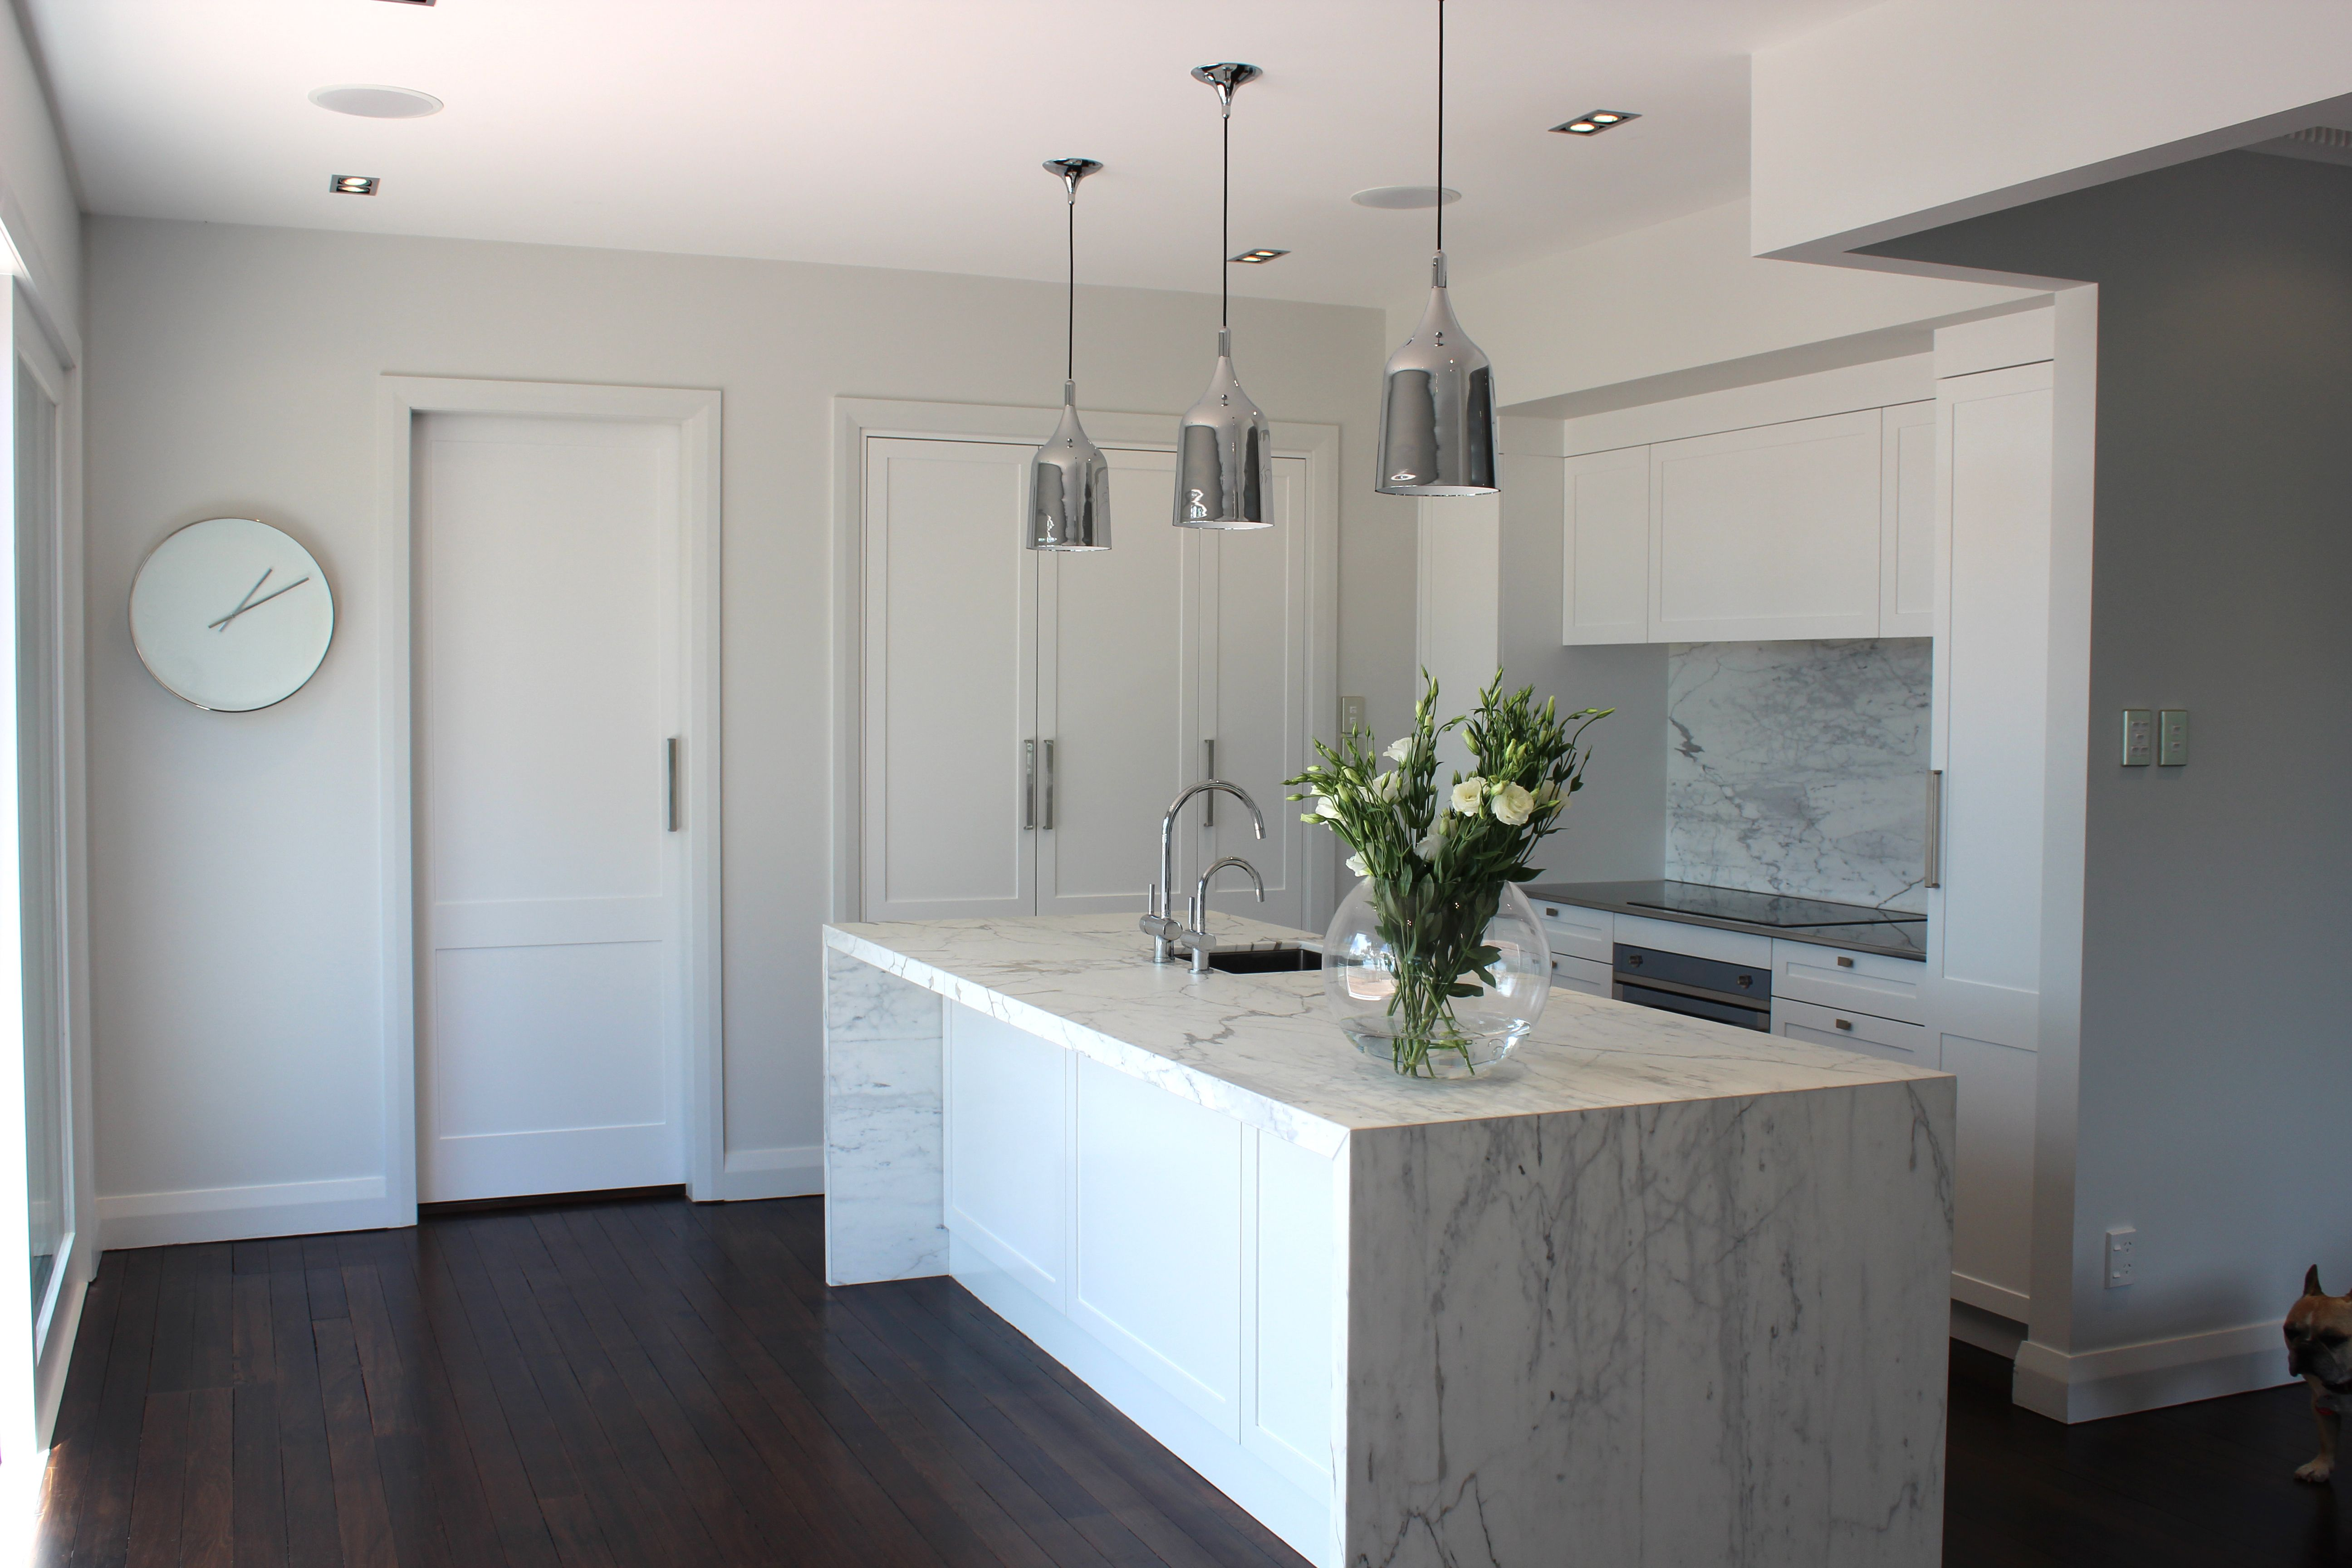 Uncategorized Kitchen With Integrated Appliances my kitchen carrara marble waterfall benchtop and splashback copacabana pendants fully integrated appliances